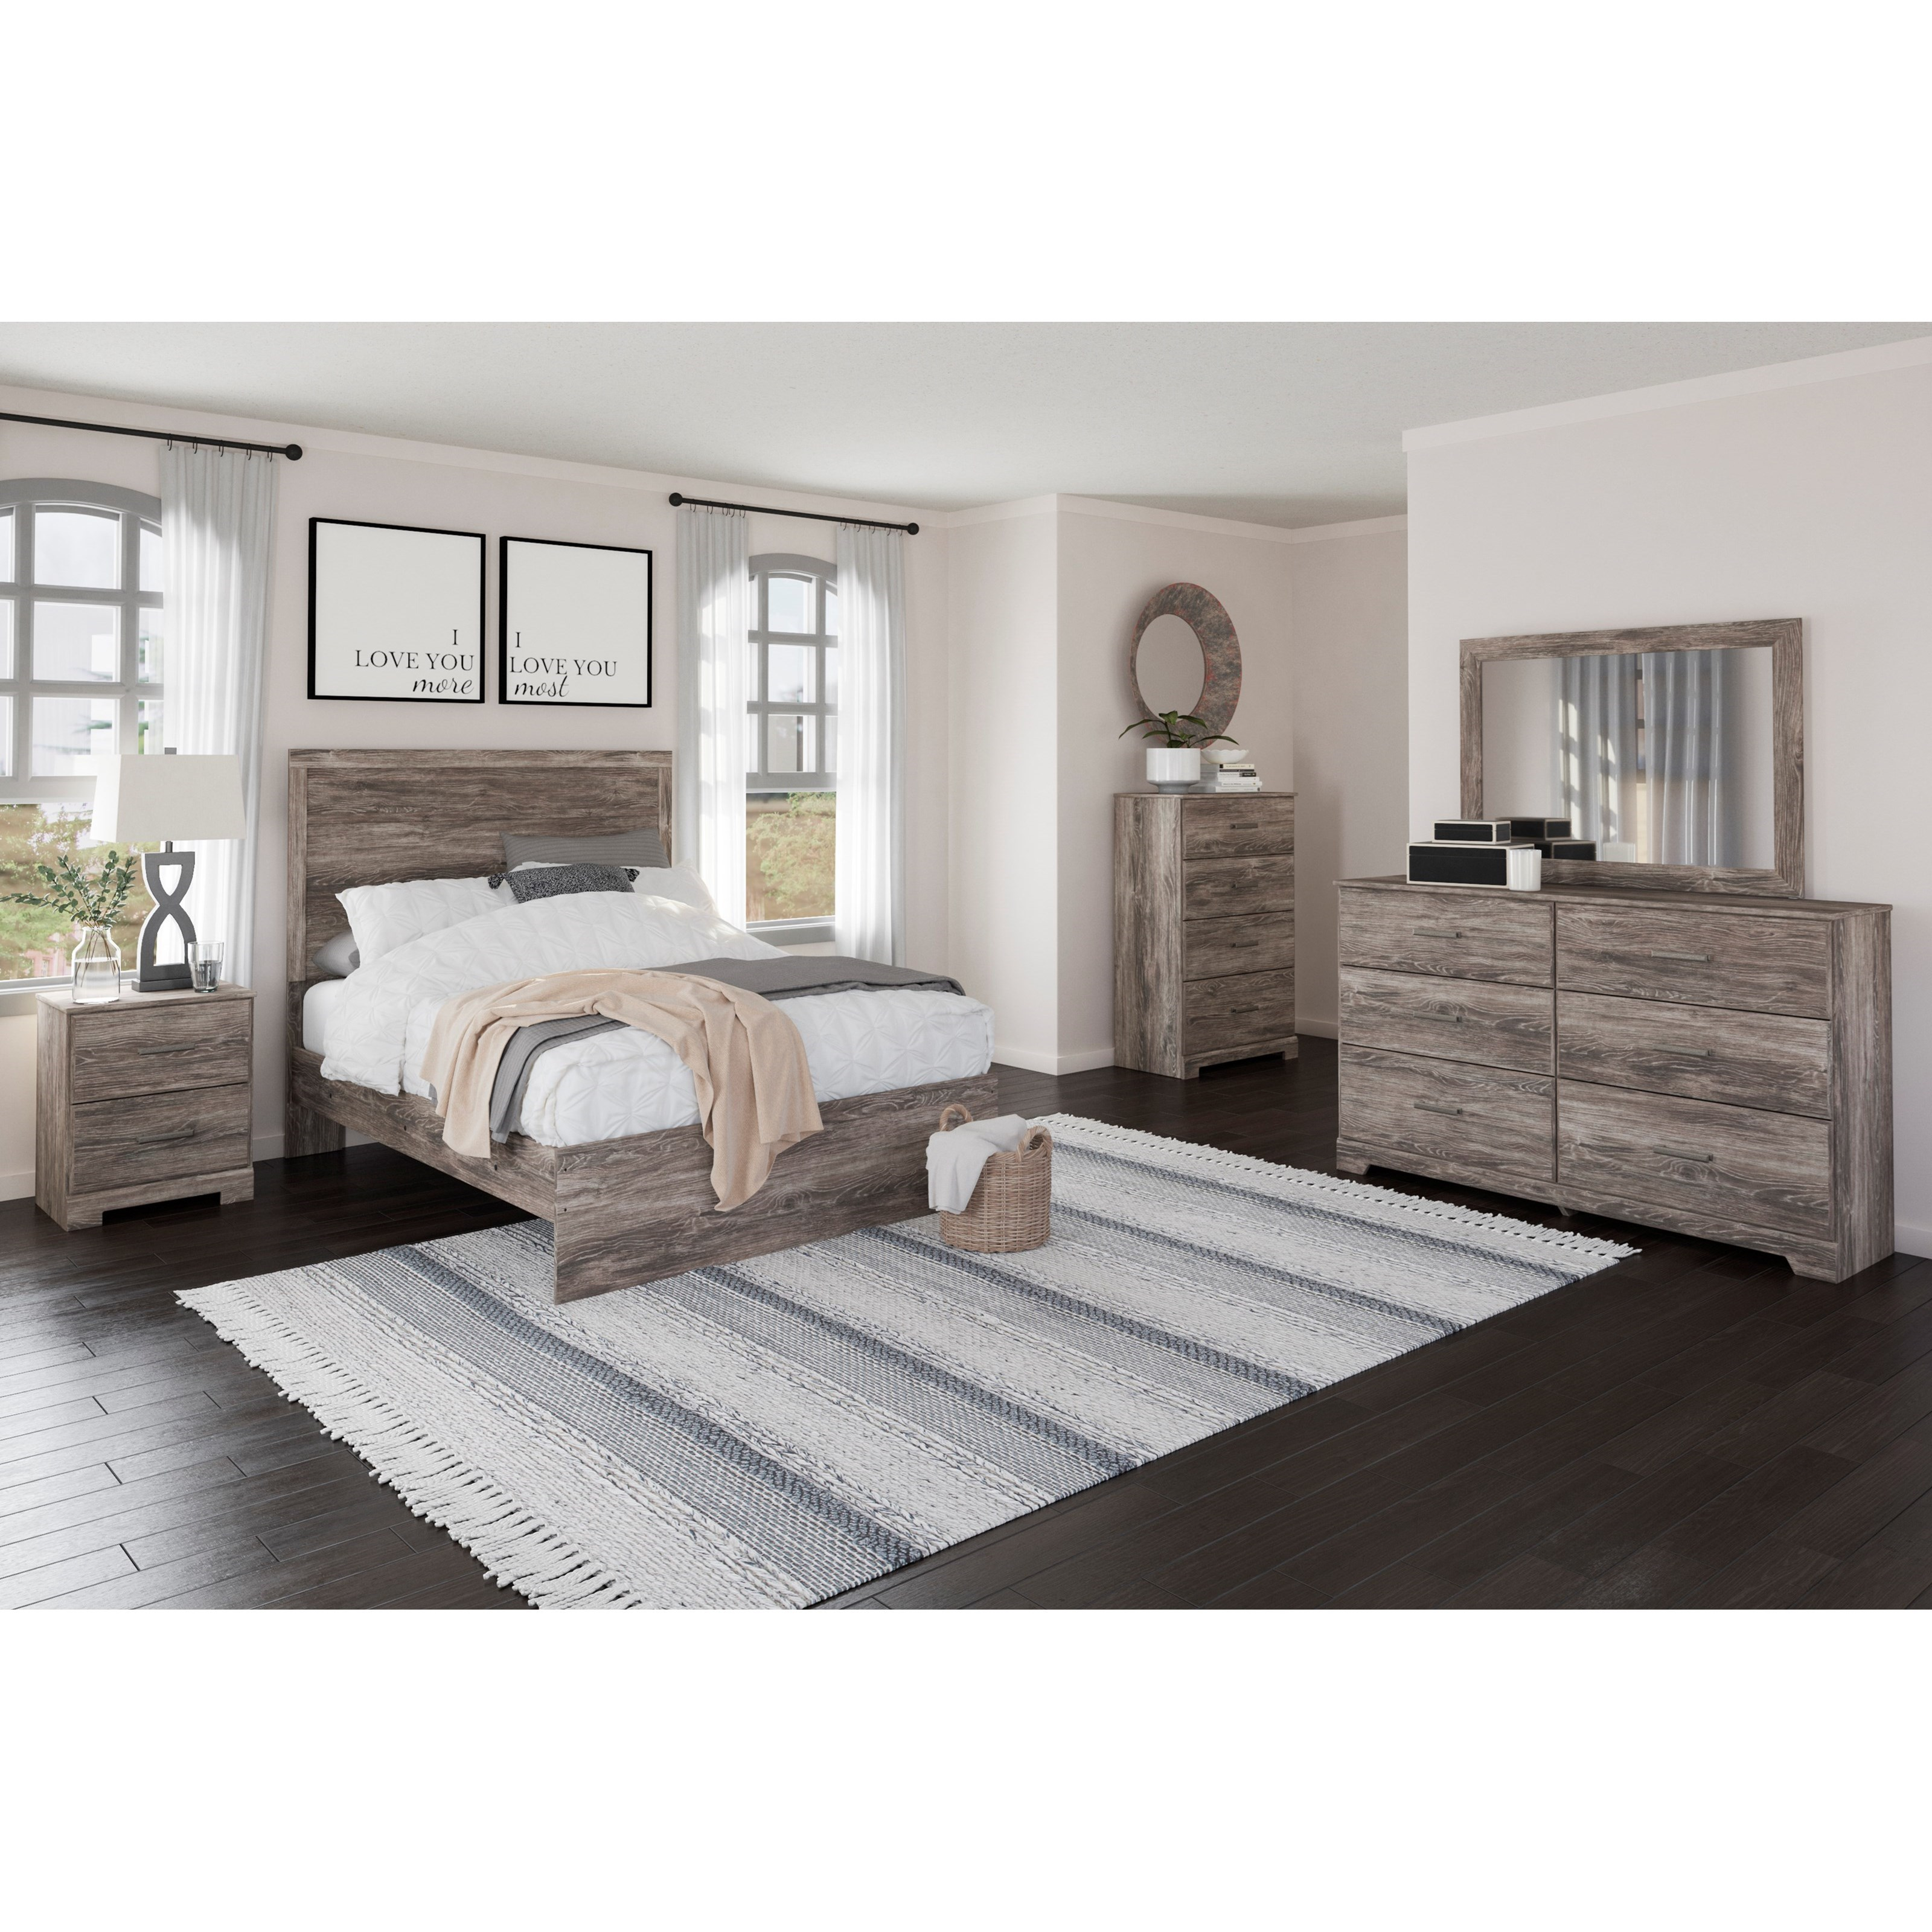 Ralinski Full Bedroom Group by Signature Design by Ashley at Standard Furniture